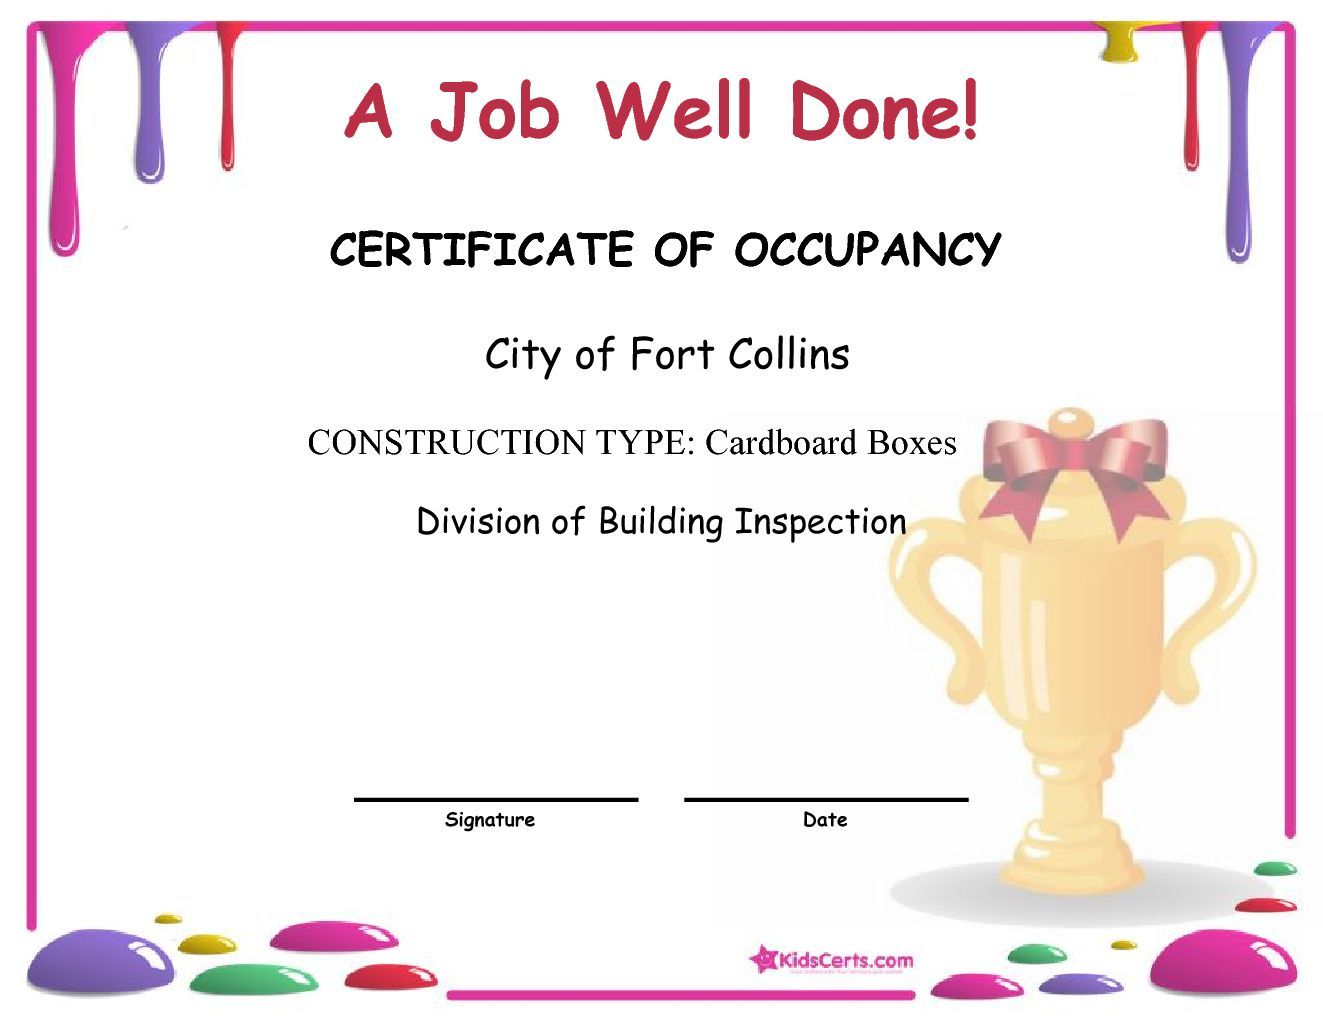 A job well done division of building inspection arts